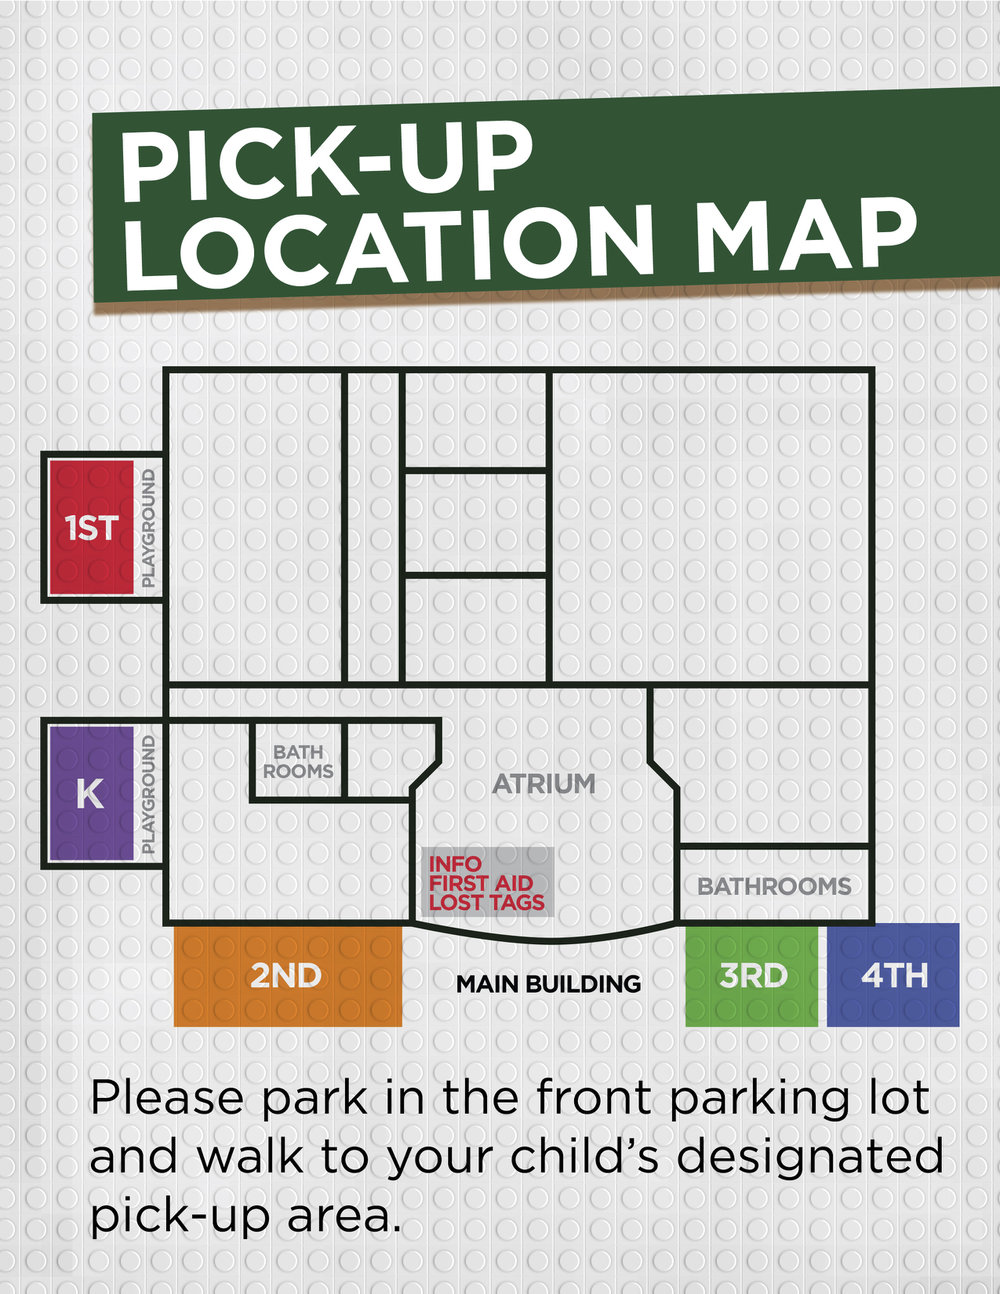 Pick up areas will be on the sides and front side of the building. Please park in the front parking lot and walk to the designated areas to pick up your child.